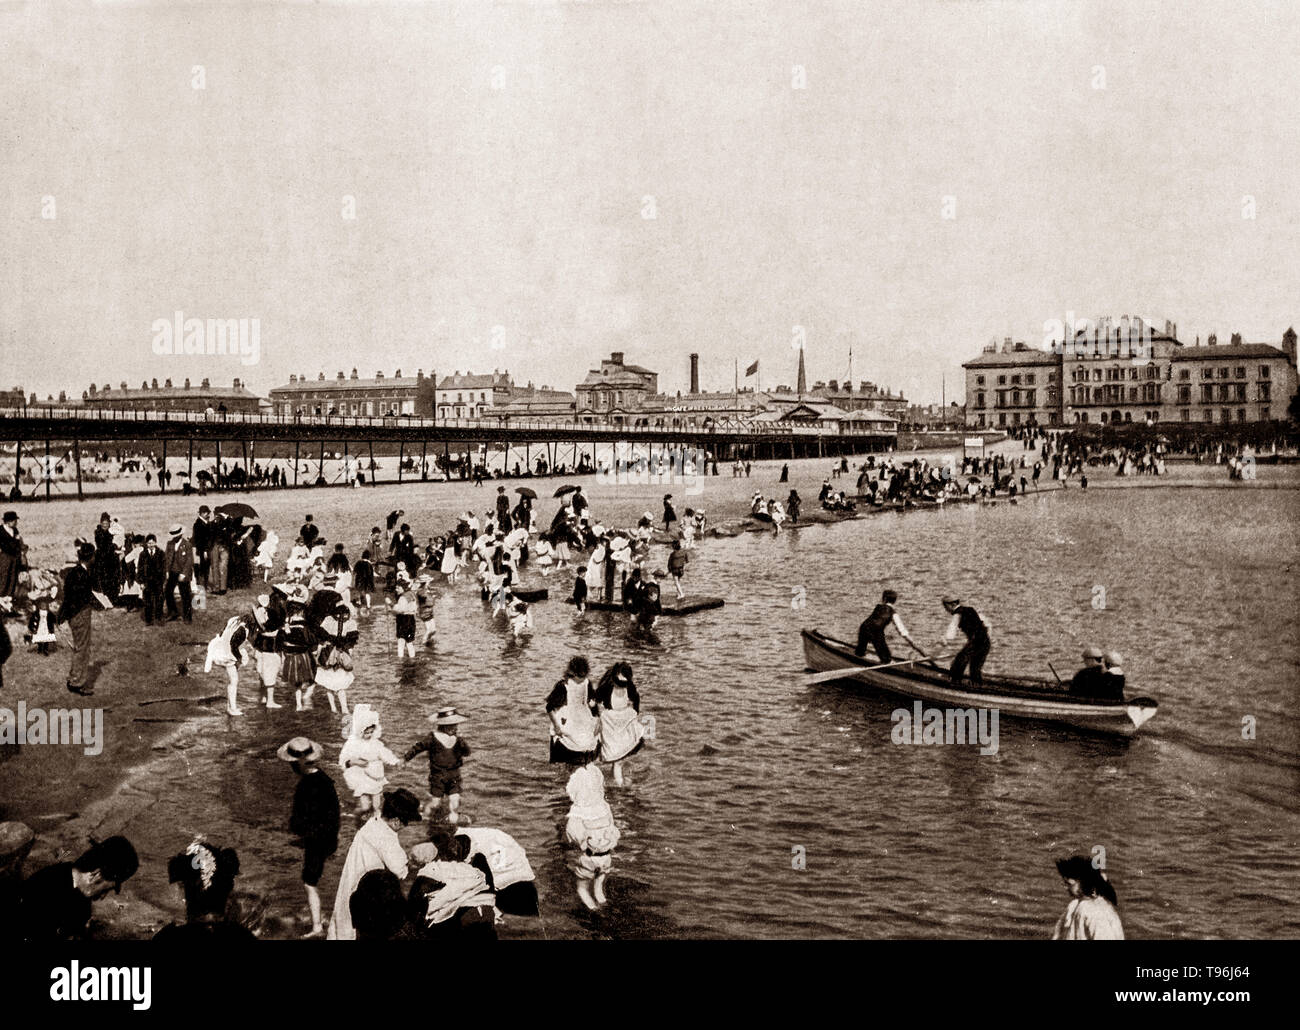 A late 19th Century view of  holiday makers in Southport, a Lancashire seaside town lying on the Irish Sea coast and is fringed to the north by the Ribble estuary.  At the turn of the 19th century, the area became popular with tourists, a rapid growth that largely coincided with the Industrial Revolution and the Victorian era. Town attractions include Southport Pier, one of the earliest pier structures to be erected using iron, with its Southport Pier Tramway, the second longest seaside pleasure pier in the British Isles - Stock Image